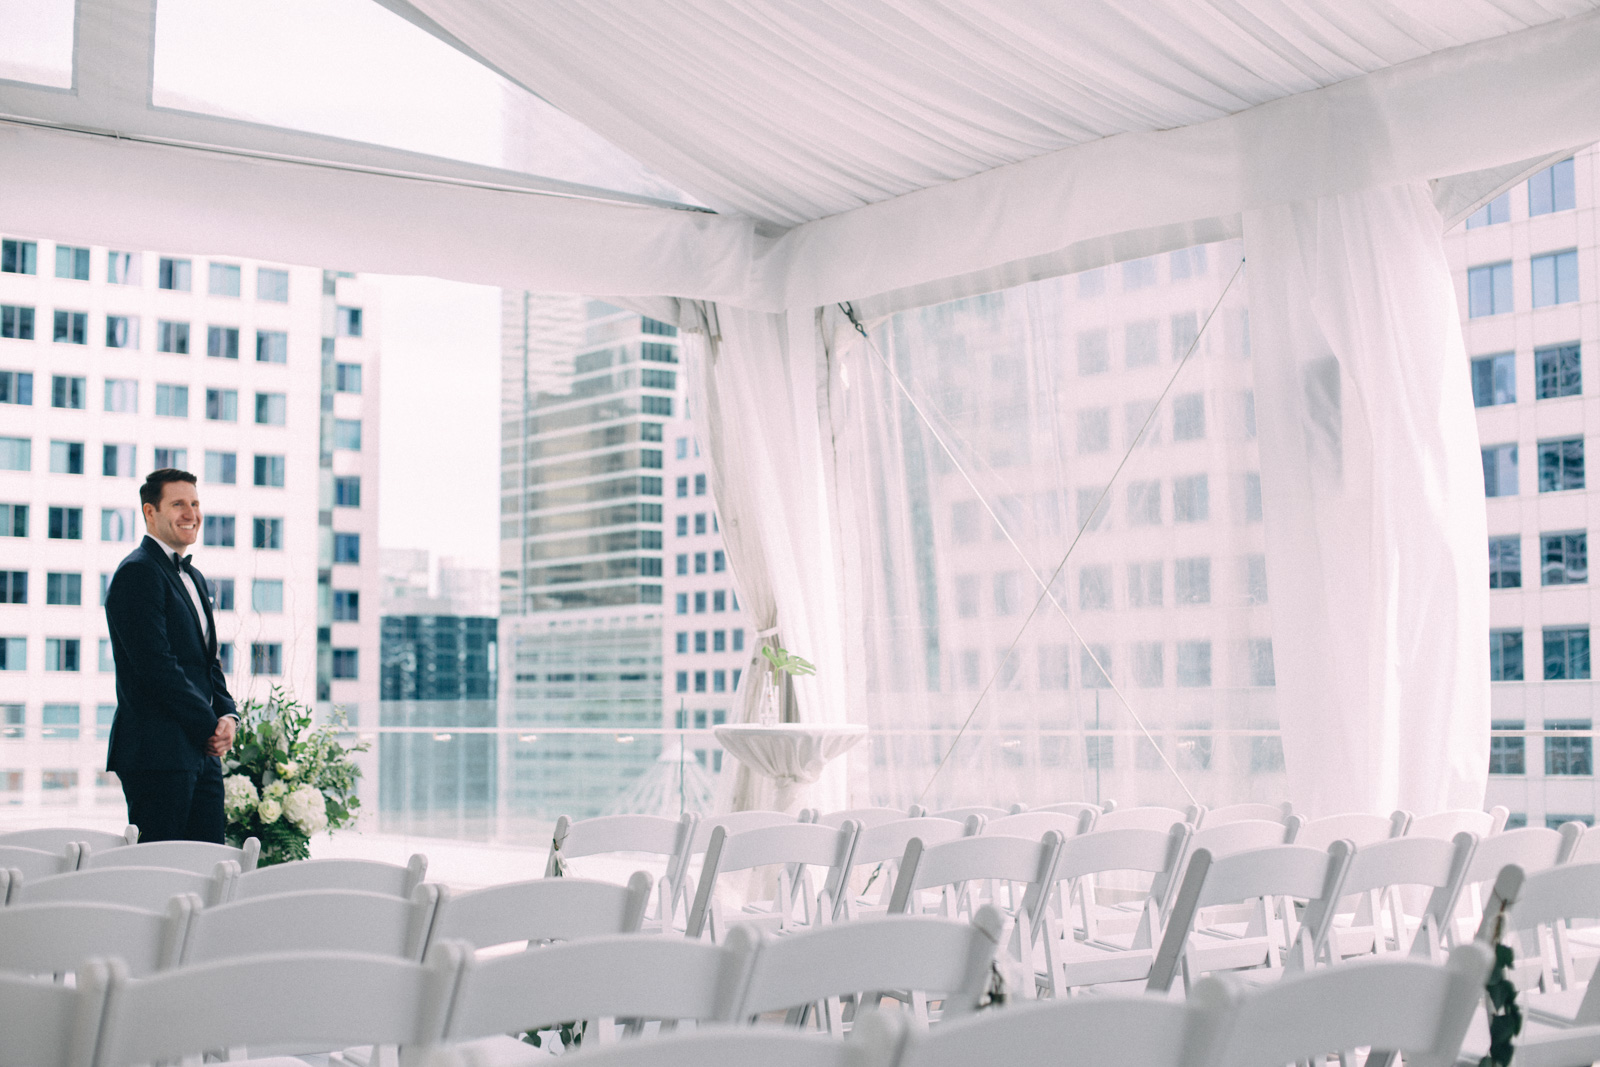 Malaparte-wedding-photography-Toronto-by-Sam-Wong-of-Visual-Cravings_24